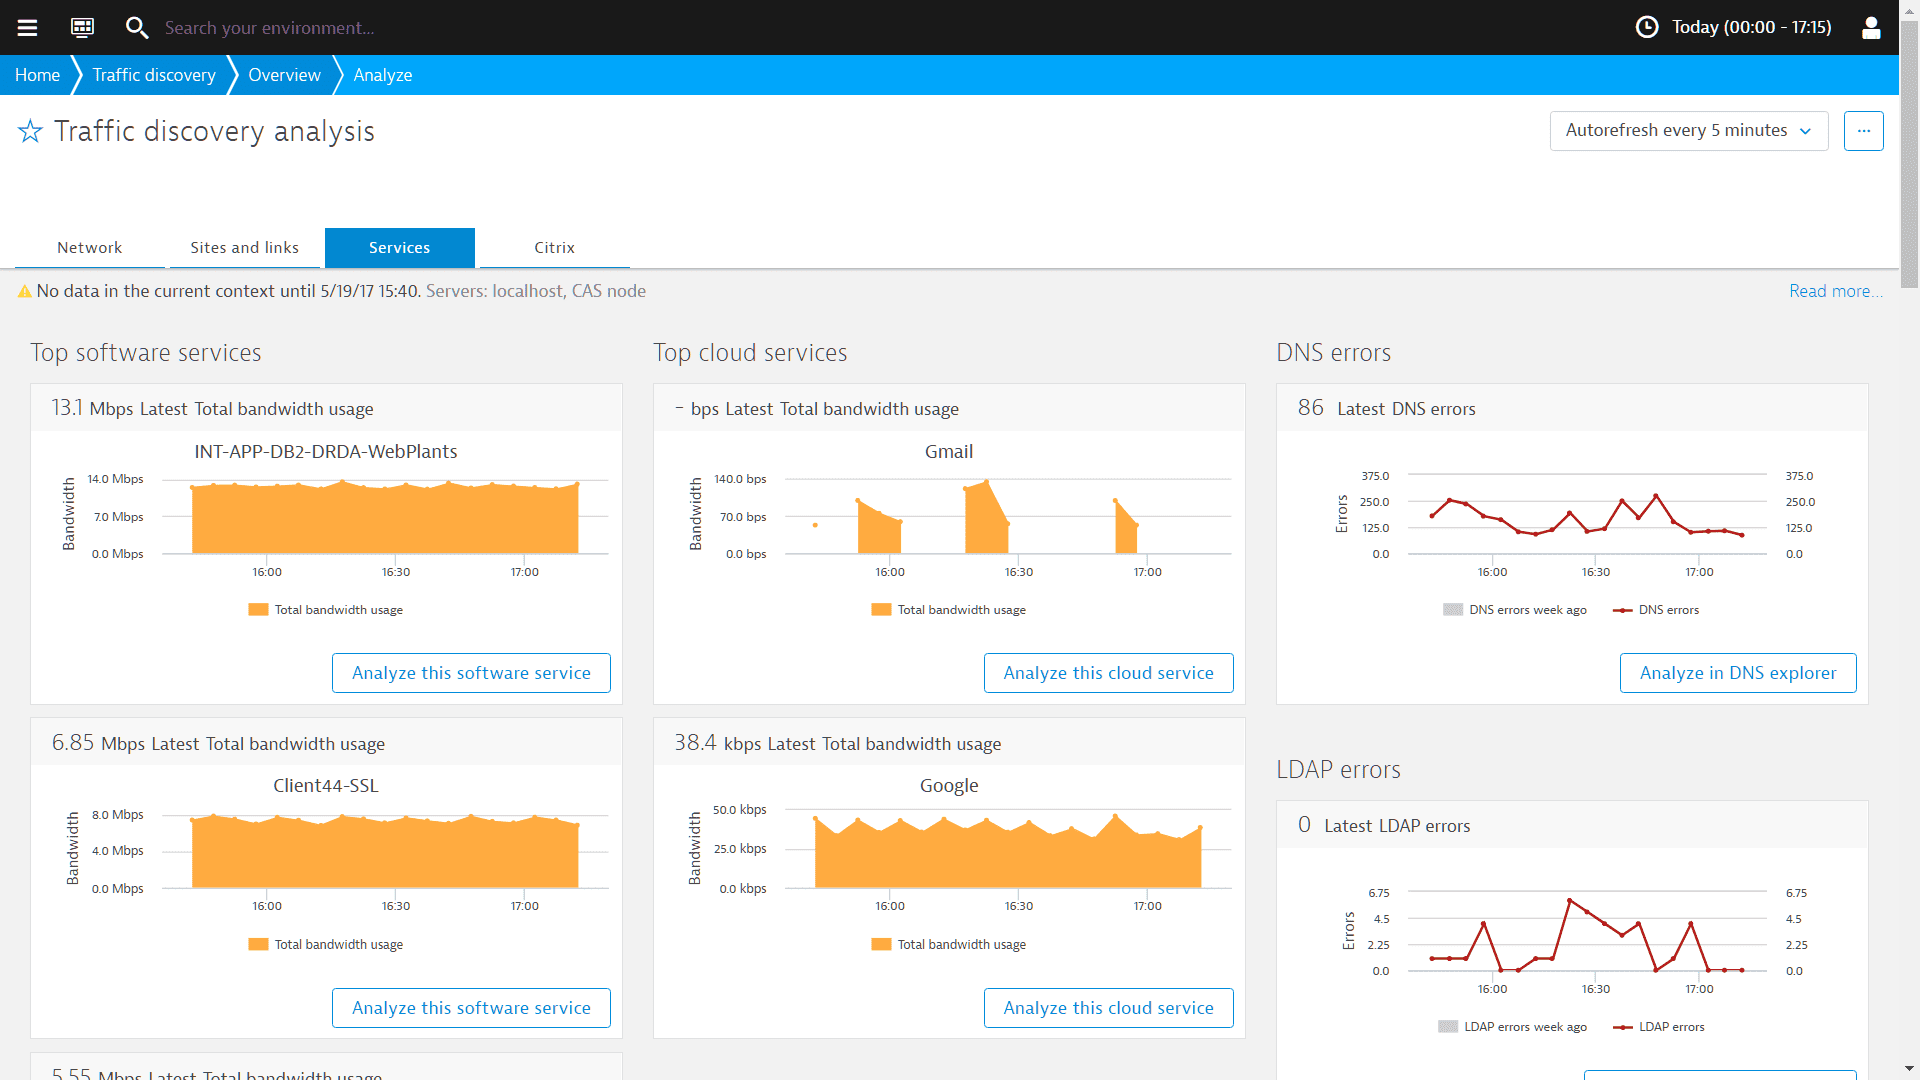 Dynatrace discovers users, application services, business-level transactions, and infrastructure components like virtual networks, sites, and links.